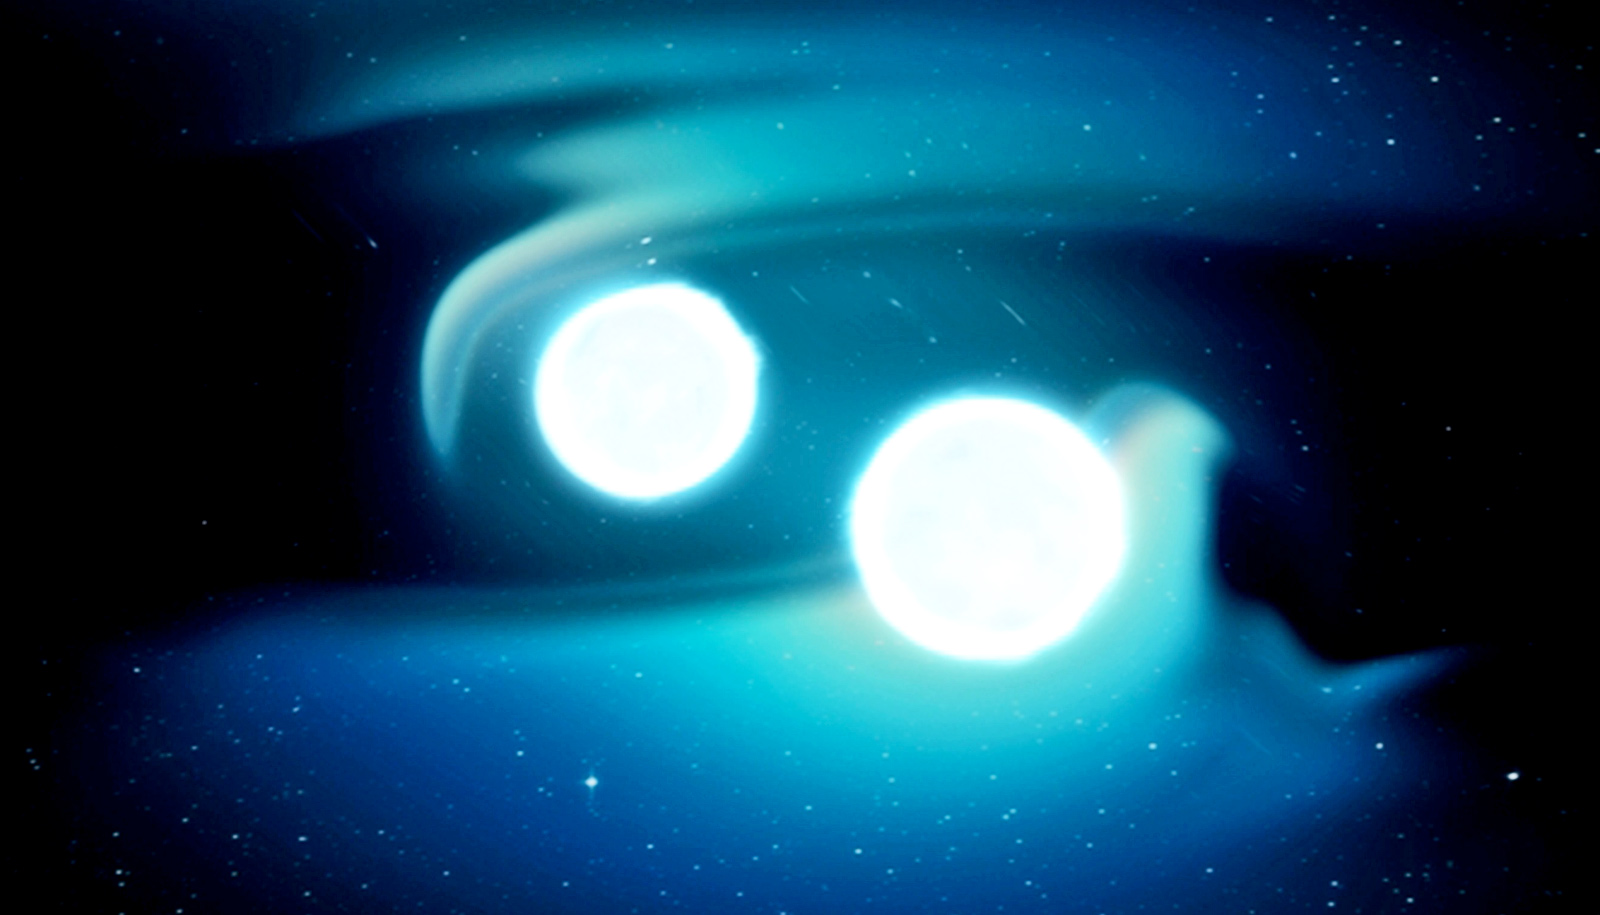 Two orbs of light orbit each other with swirls of blue around them